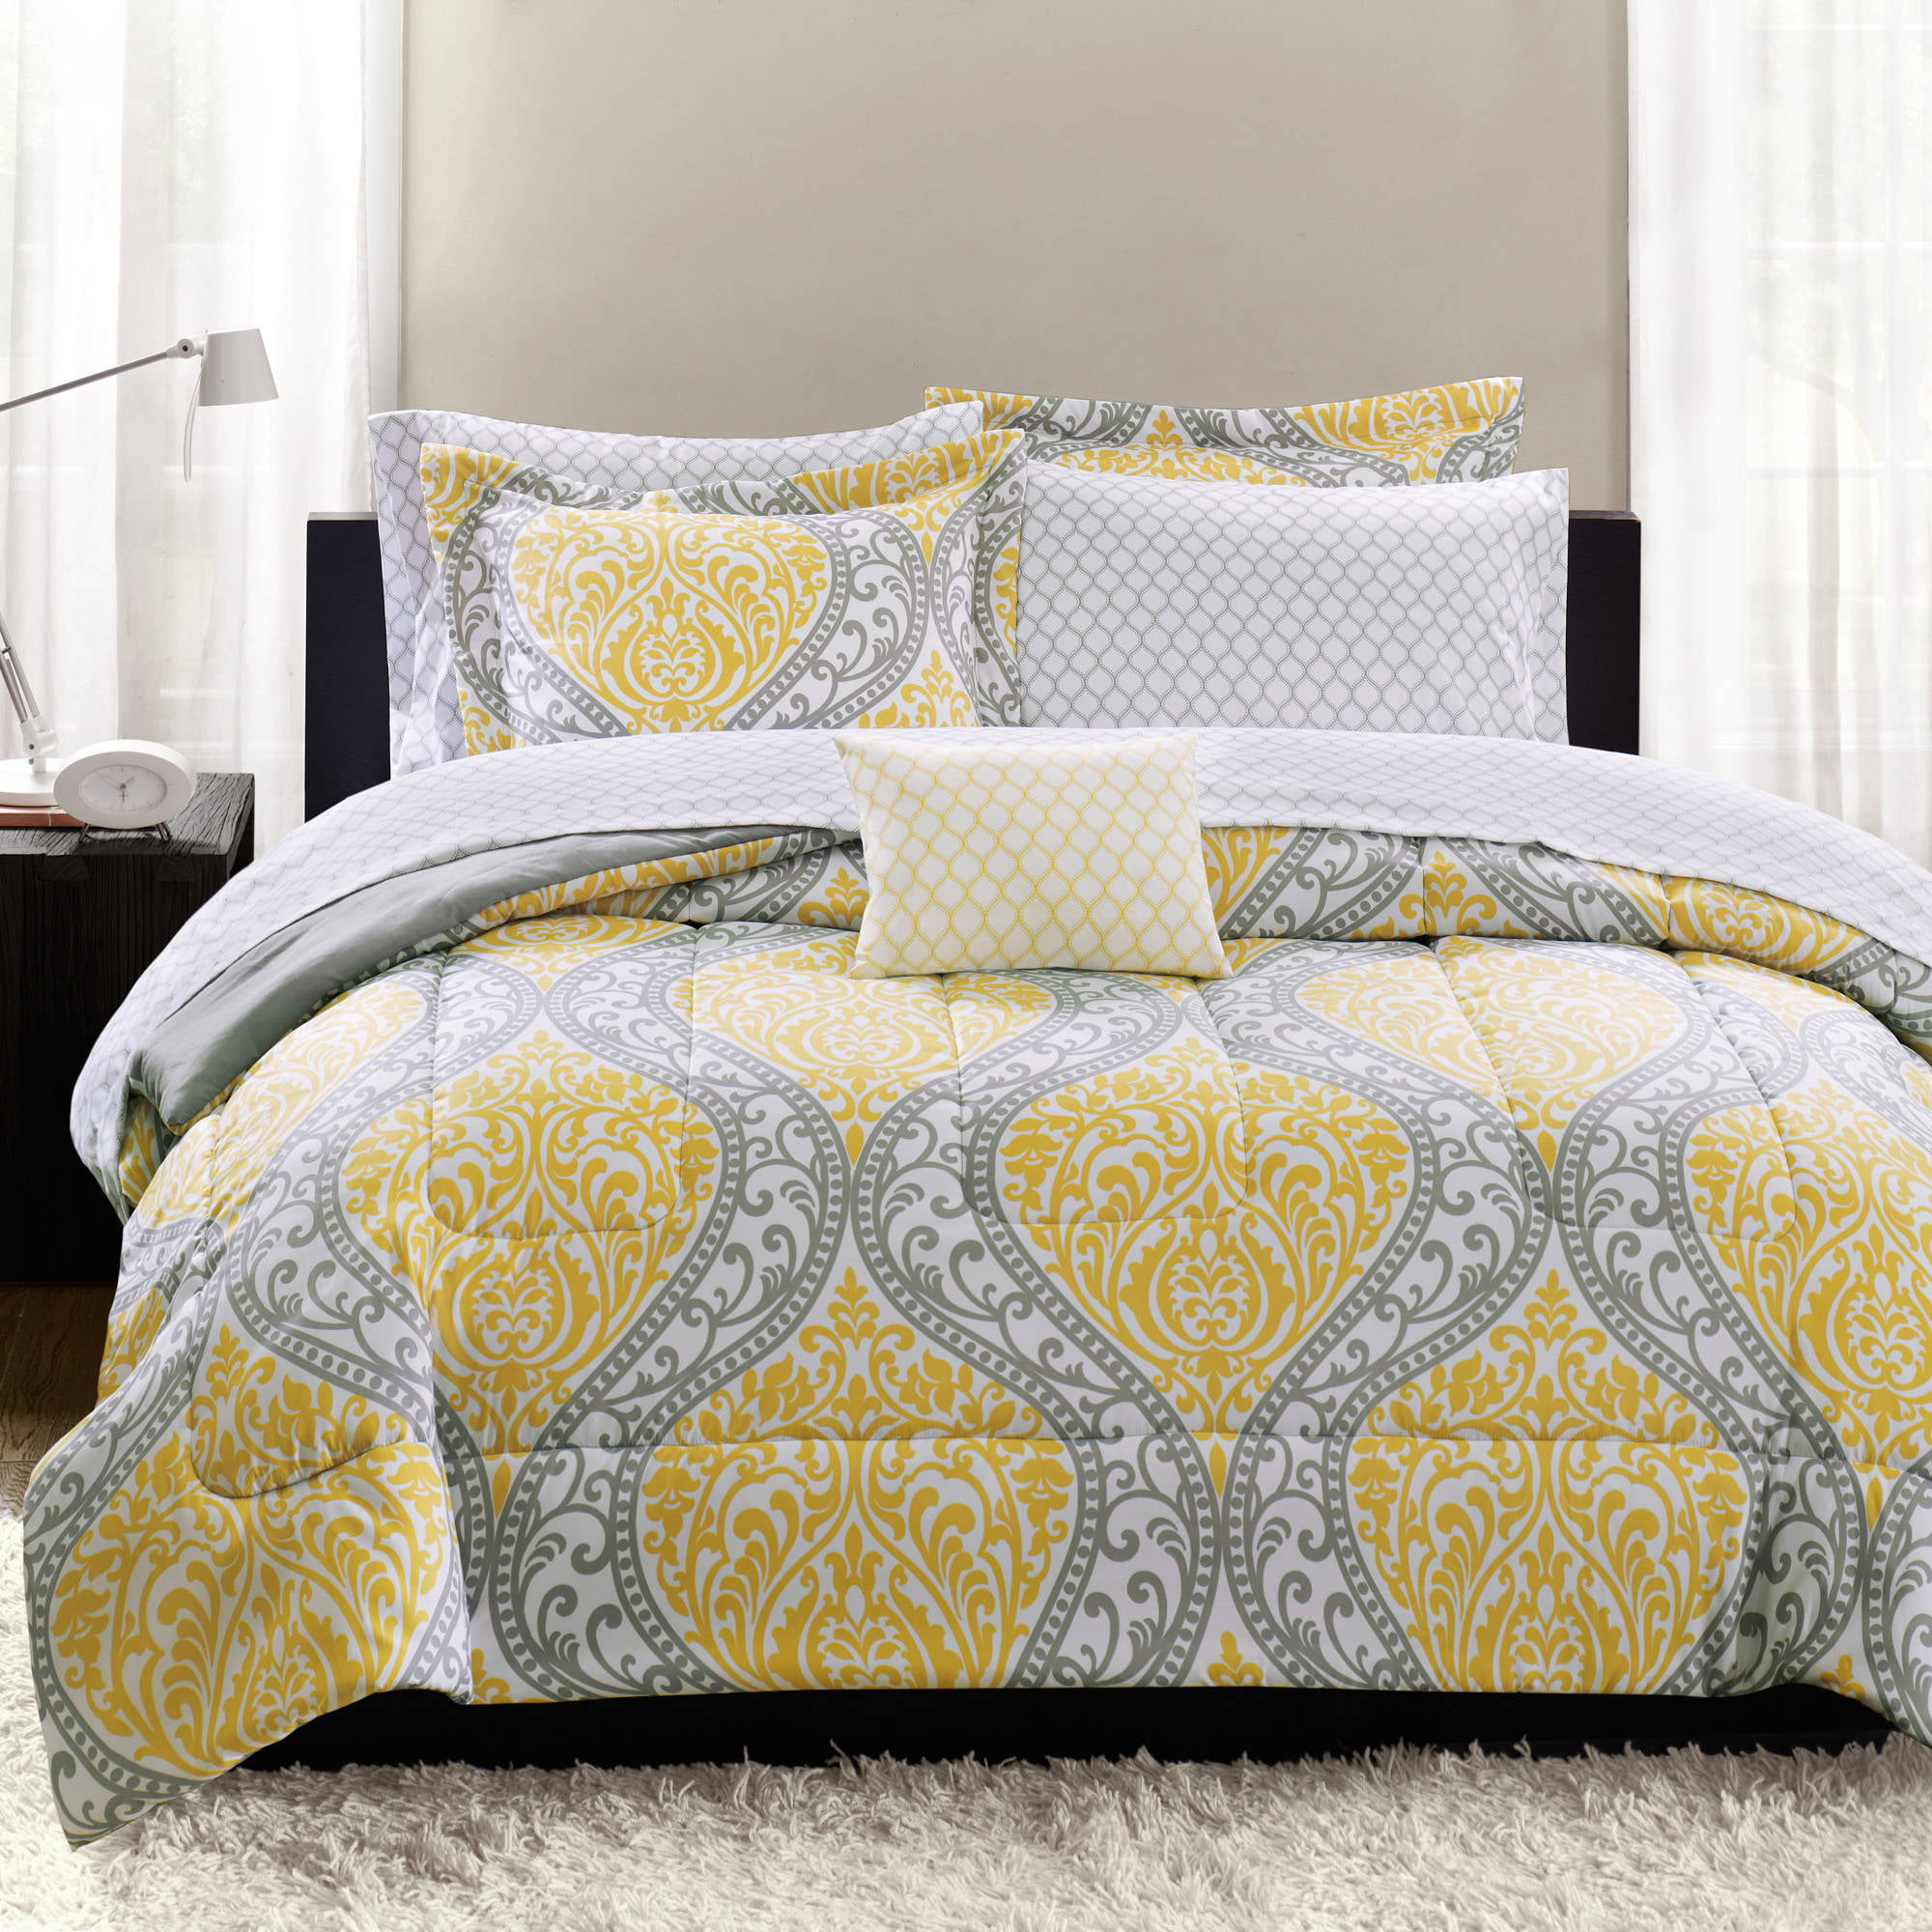 info floral yellow queen set sets comforter comforters bedding hesstonspeedway blue king